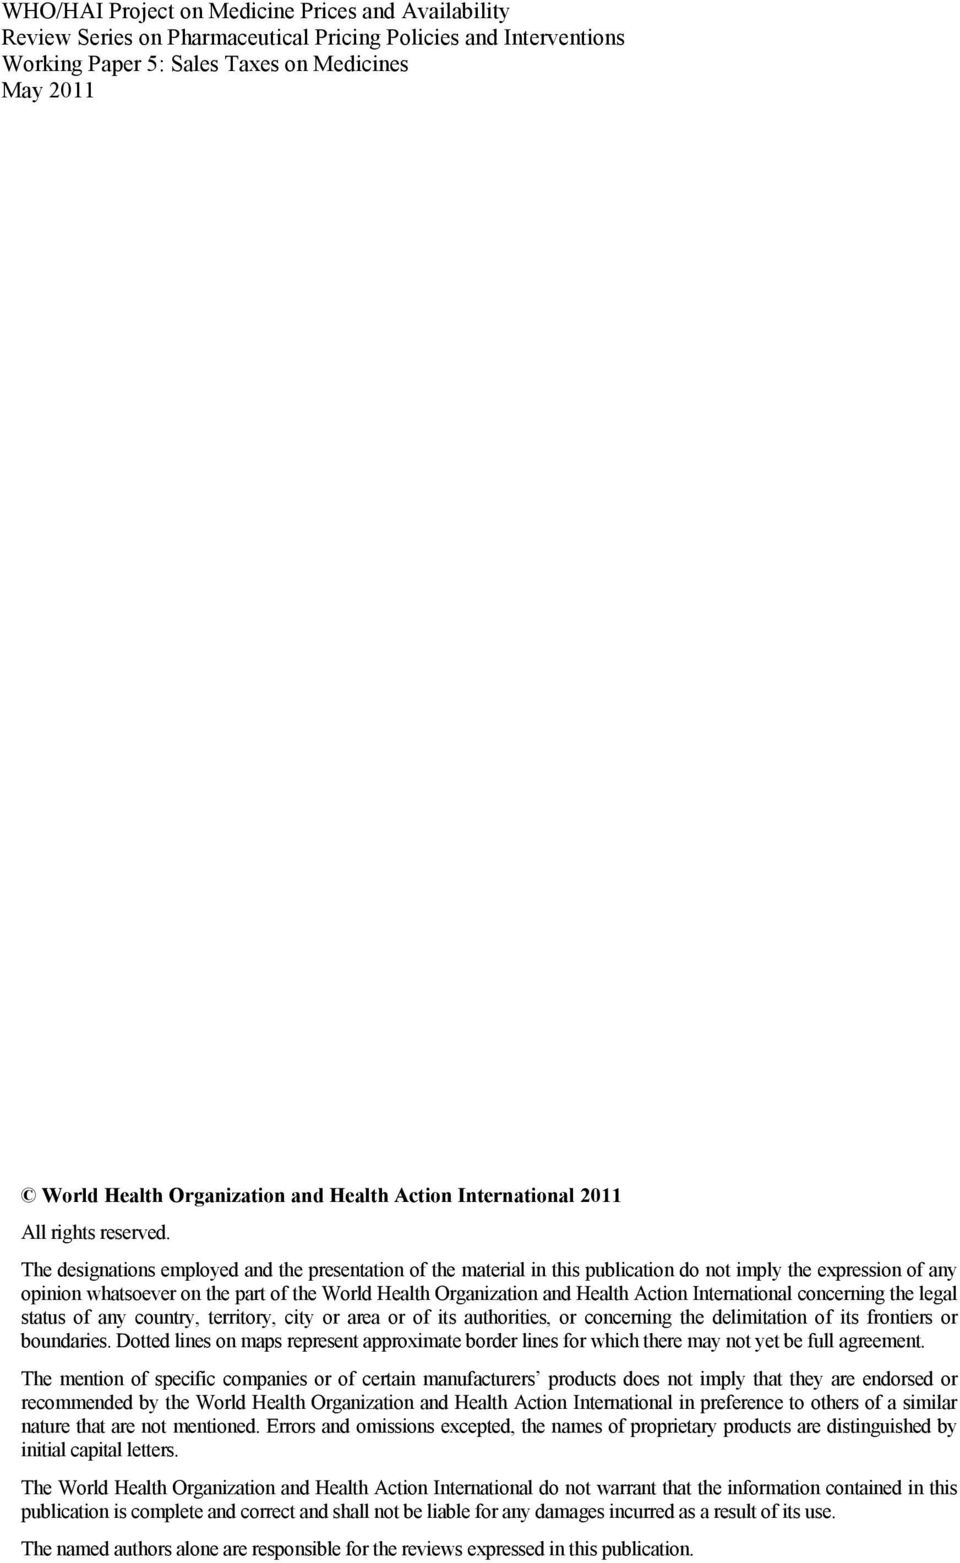 The designations employed and the presentation of the material in this publication do not imply the expression of any opinion whatsoever on the part of the World Health Organization and Health Action